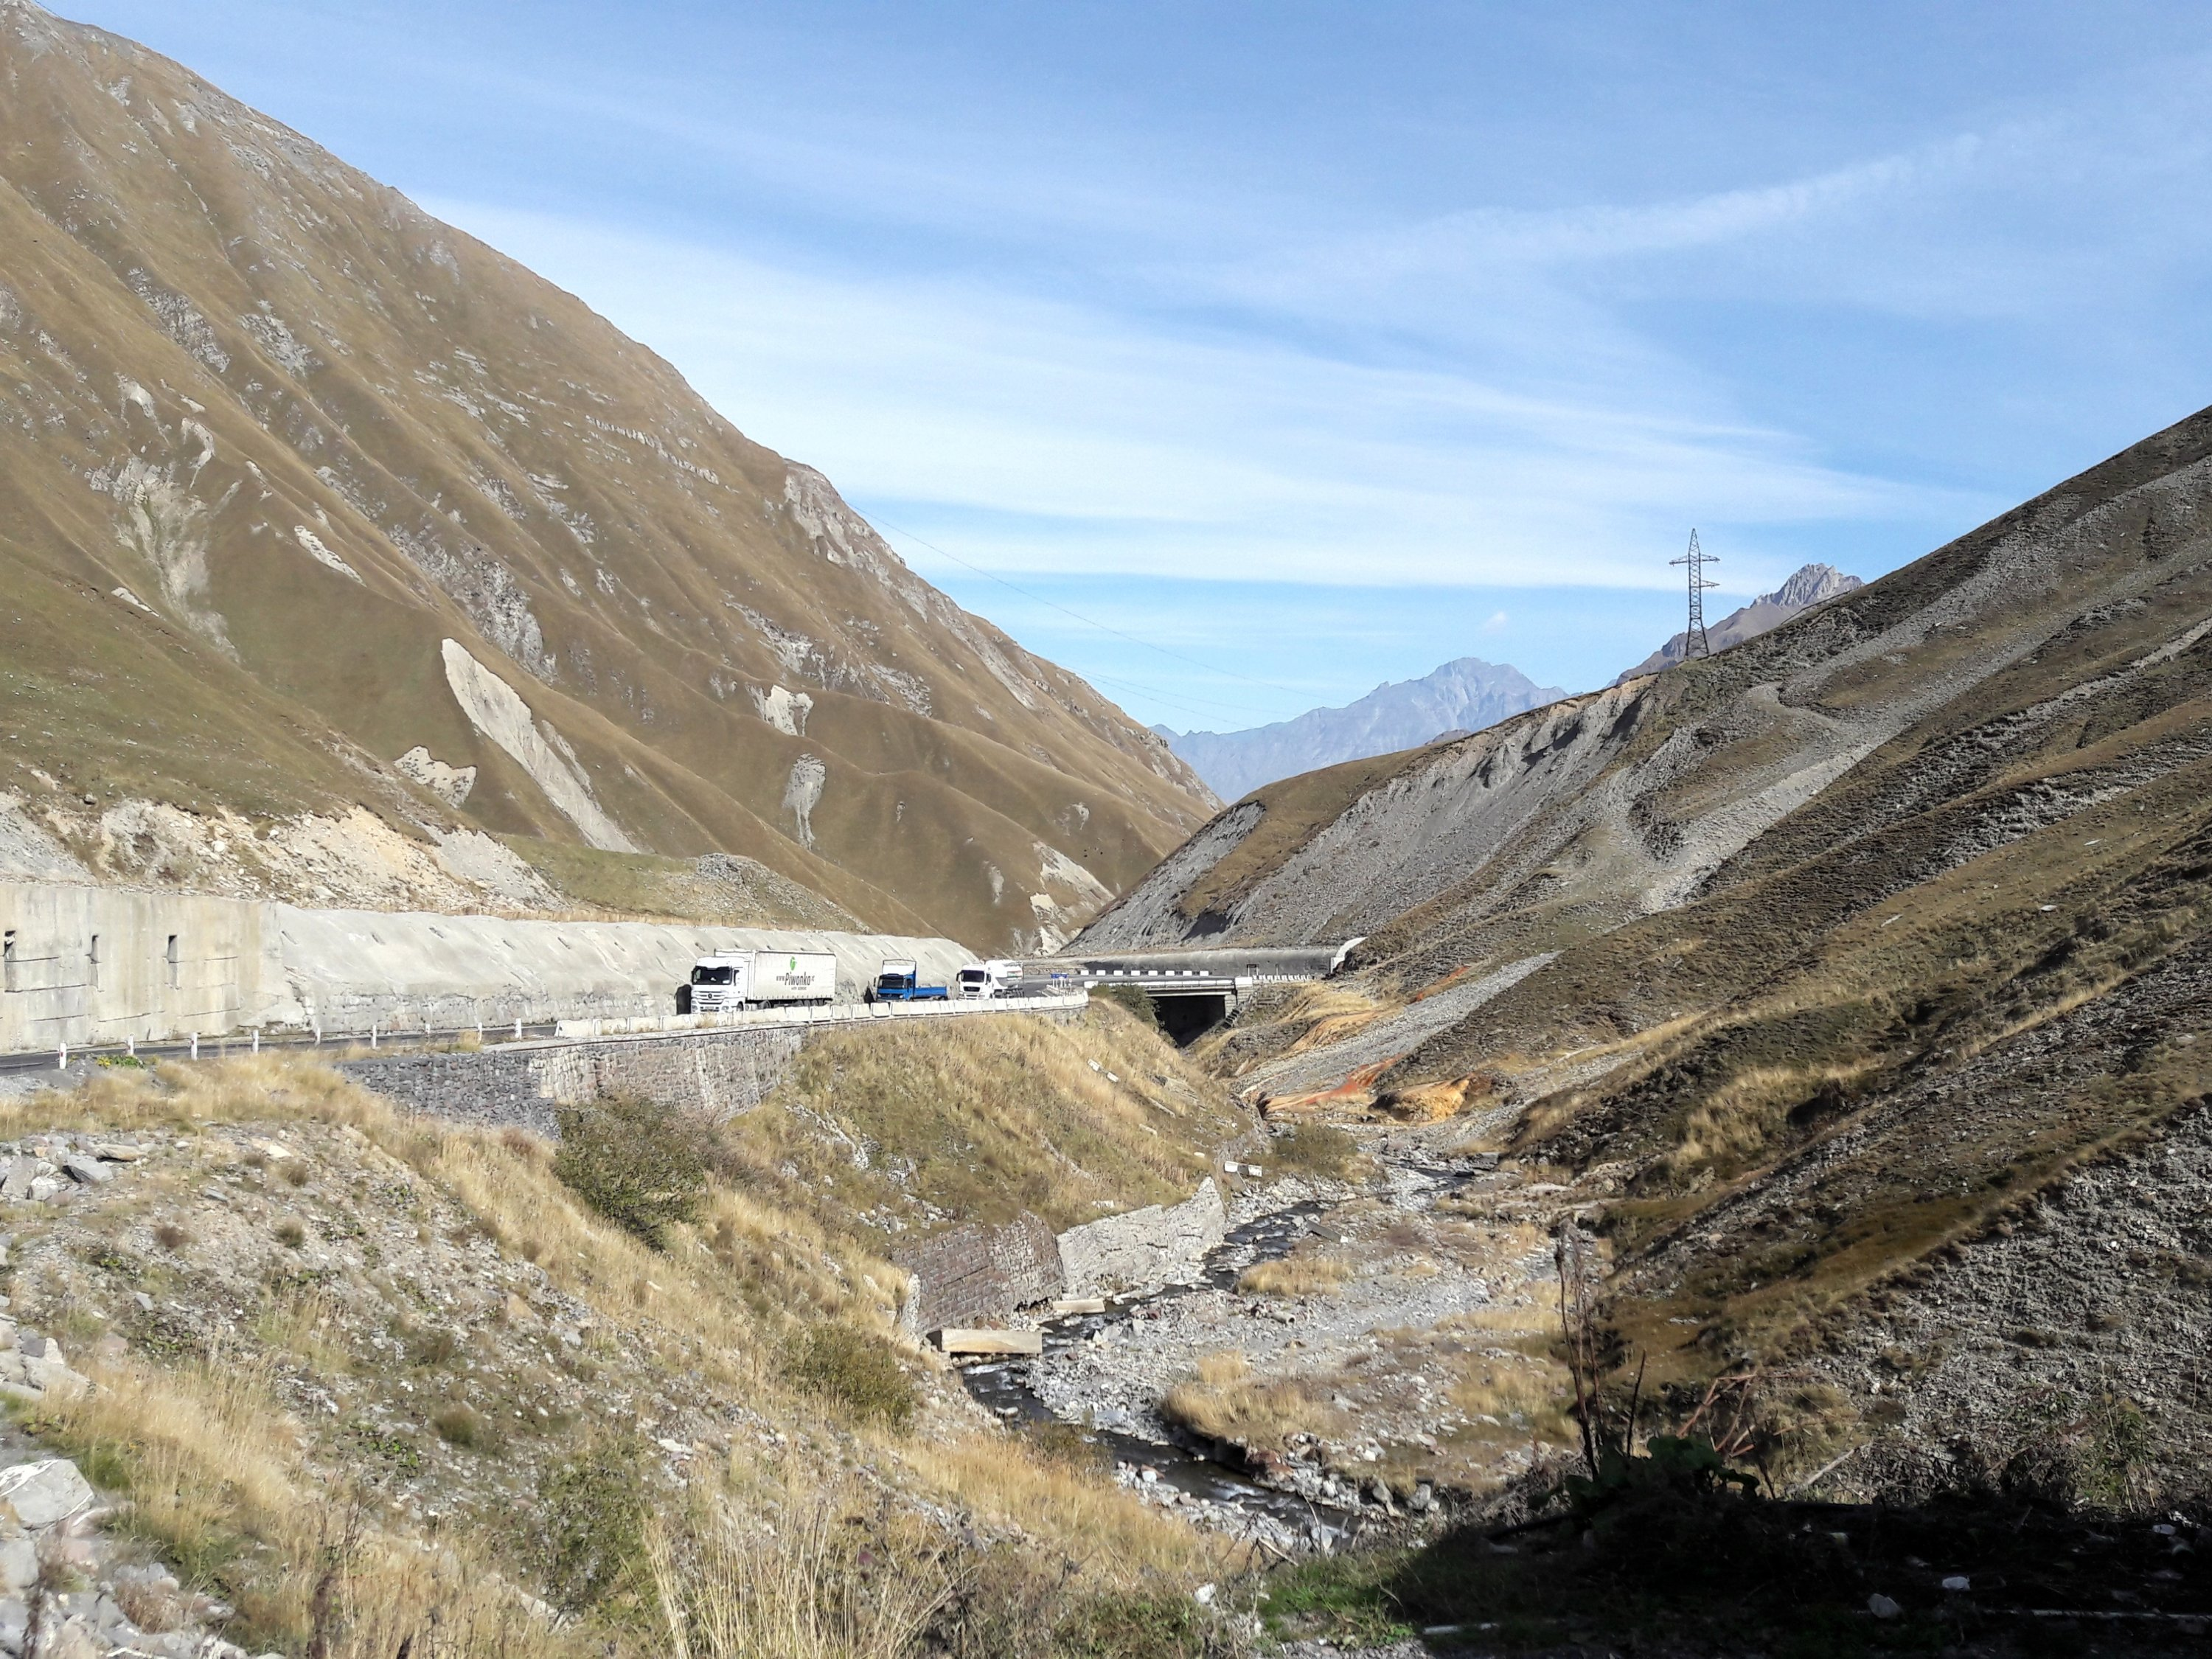 Jvari Pass Day Trips from Tbilisi